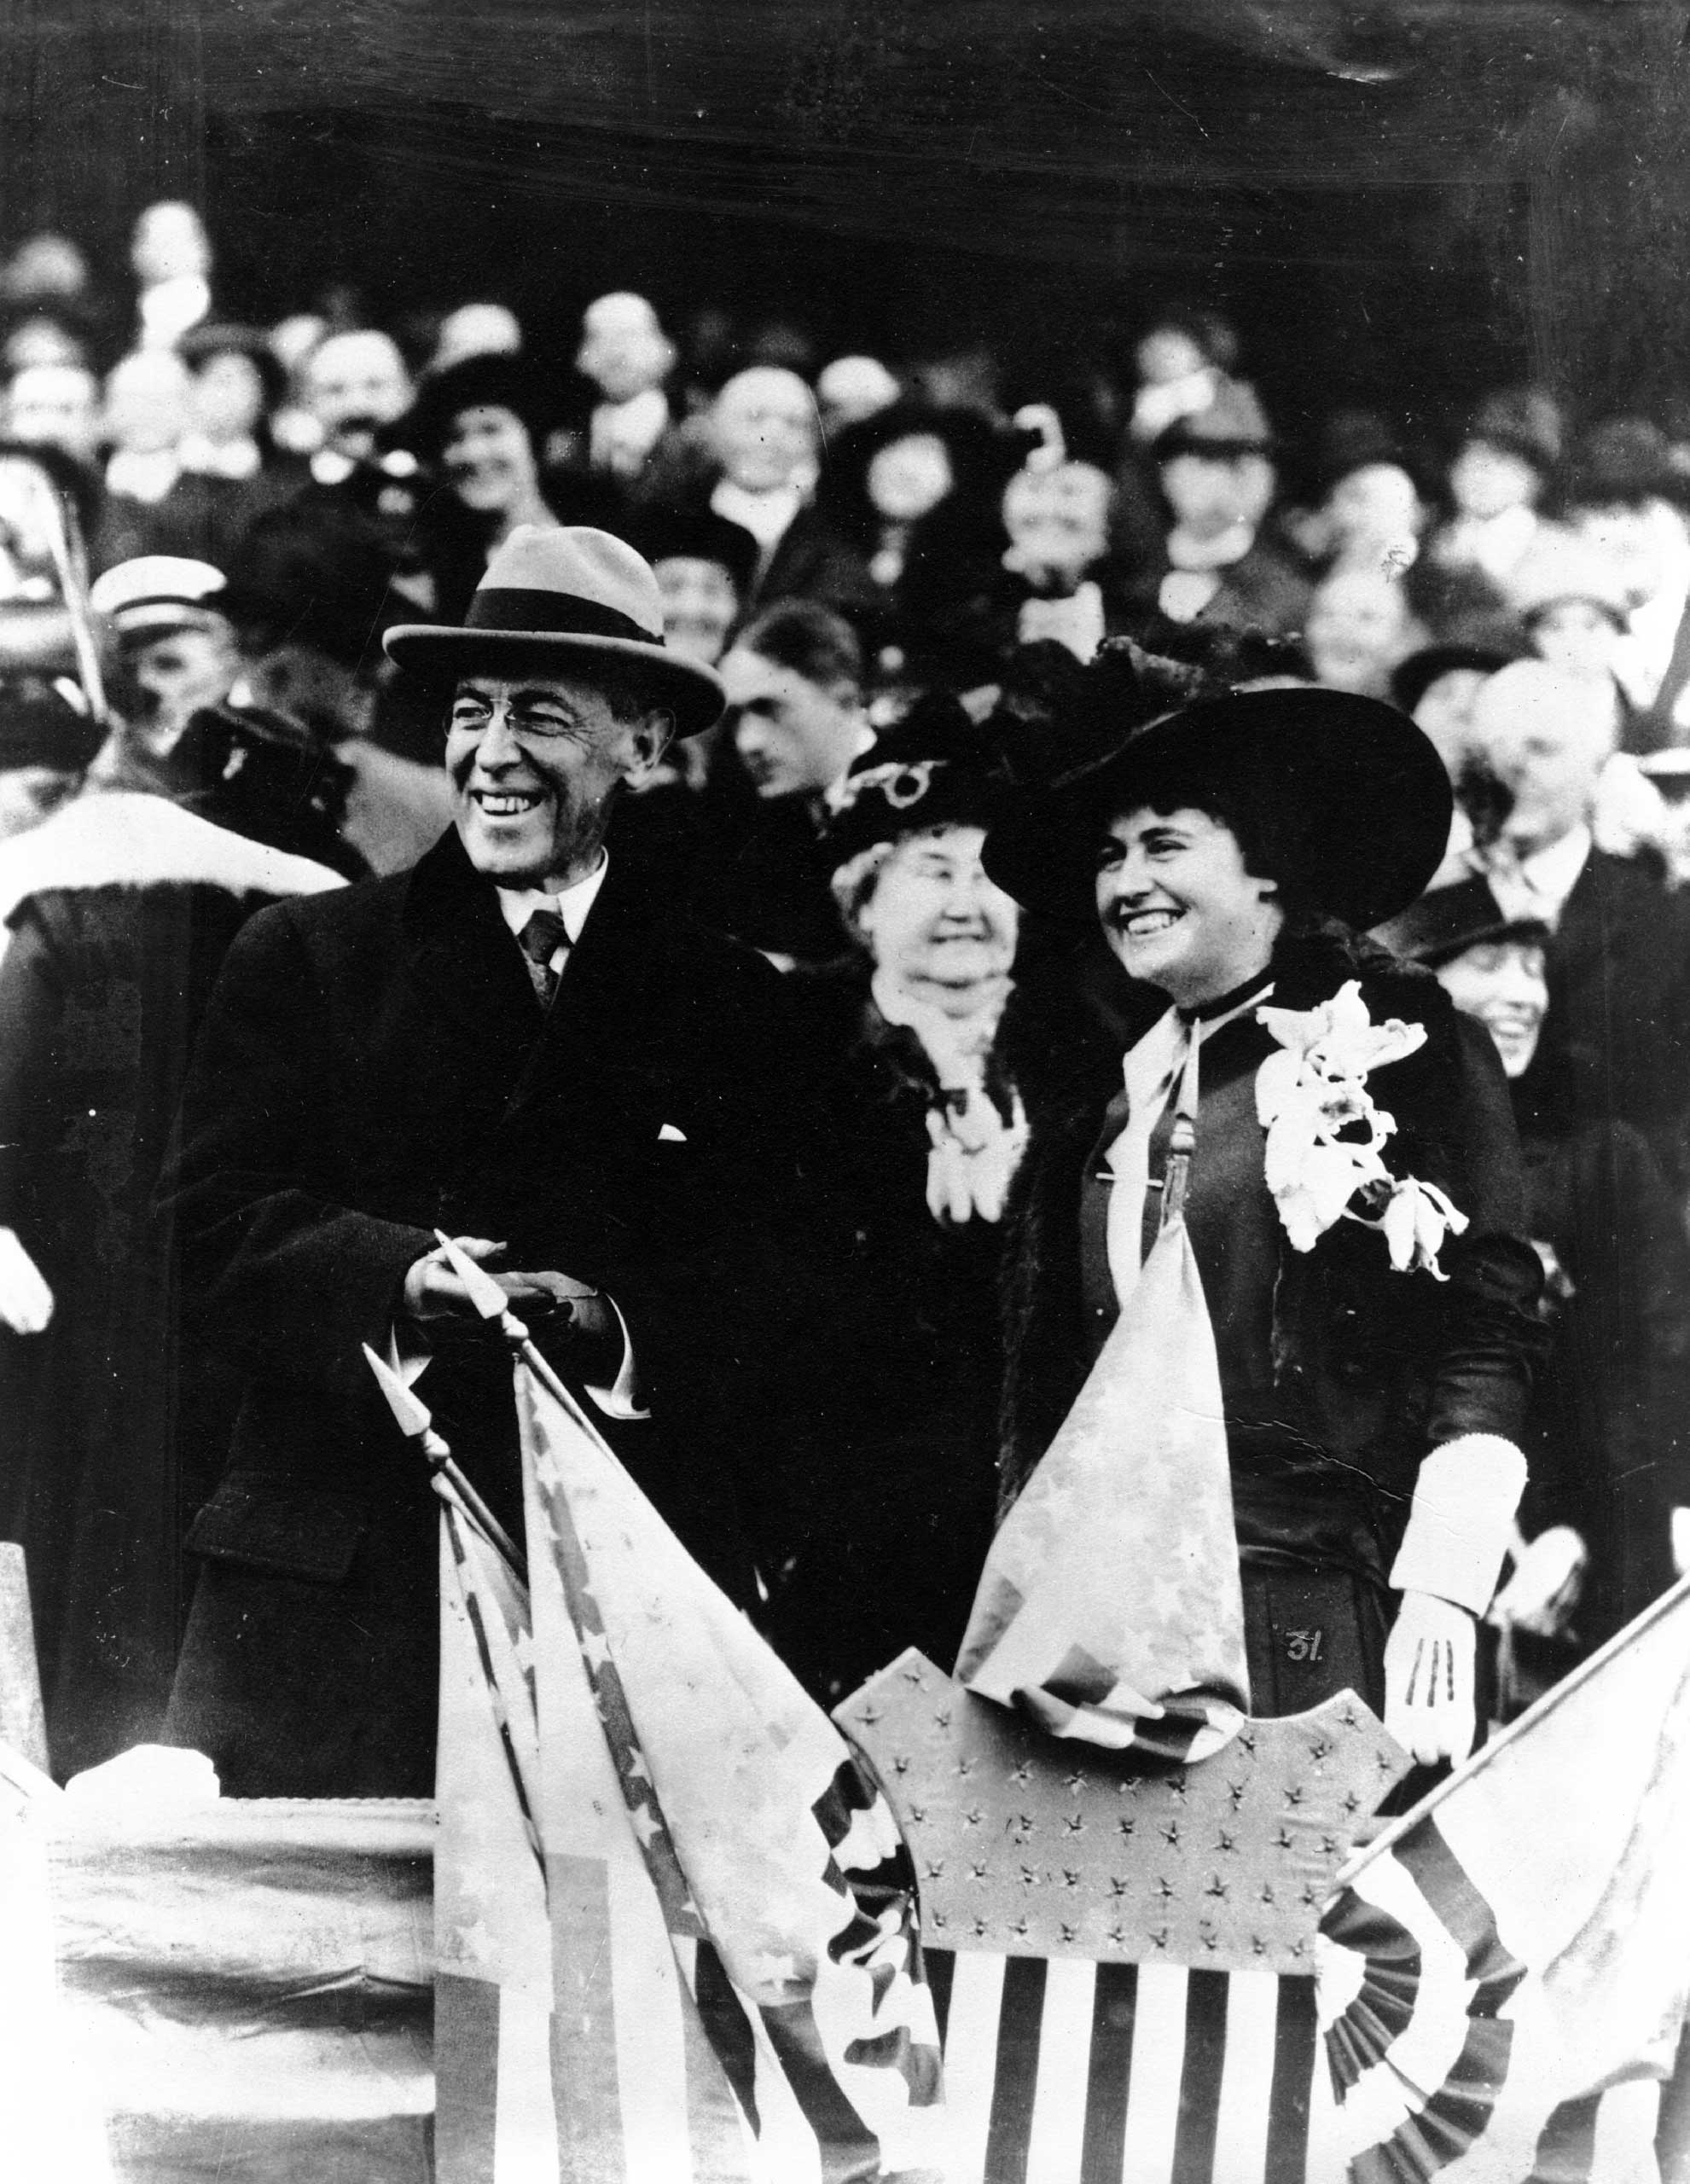 Woodrow Wilson, the 28th President of the United States, with his second wife Edith Galt at the Congressional baseball game in Sept. 1918.